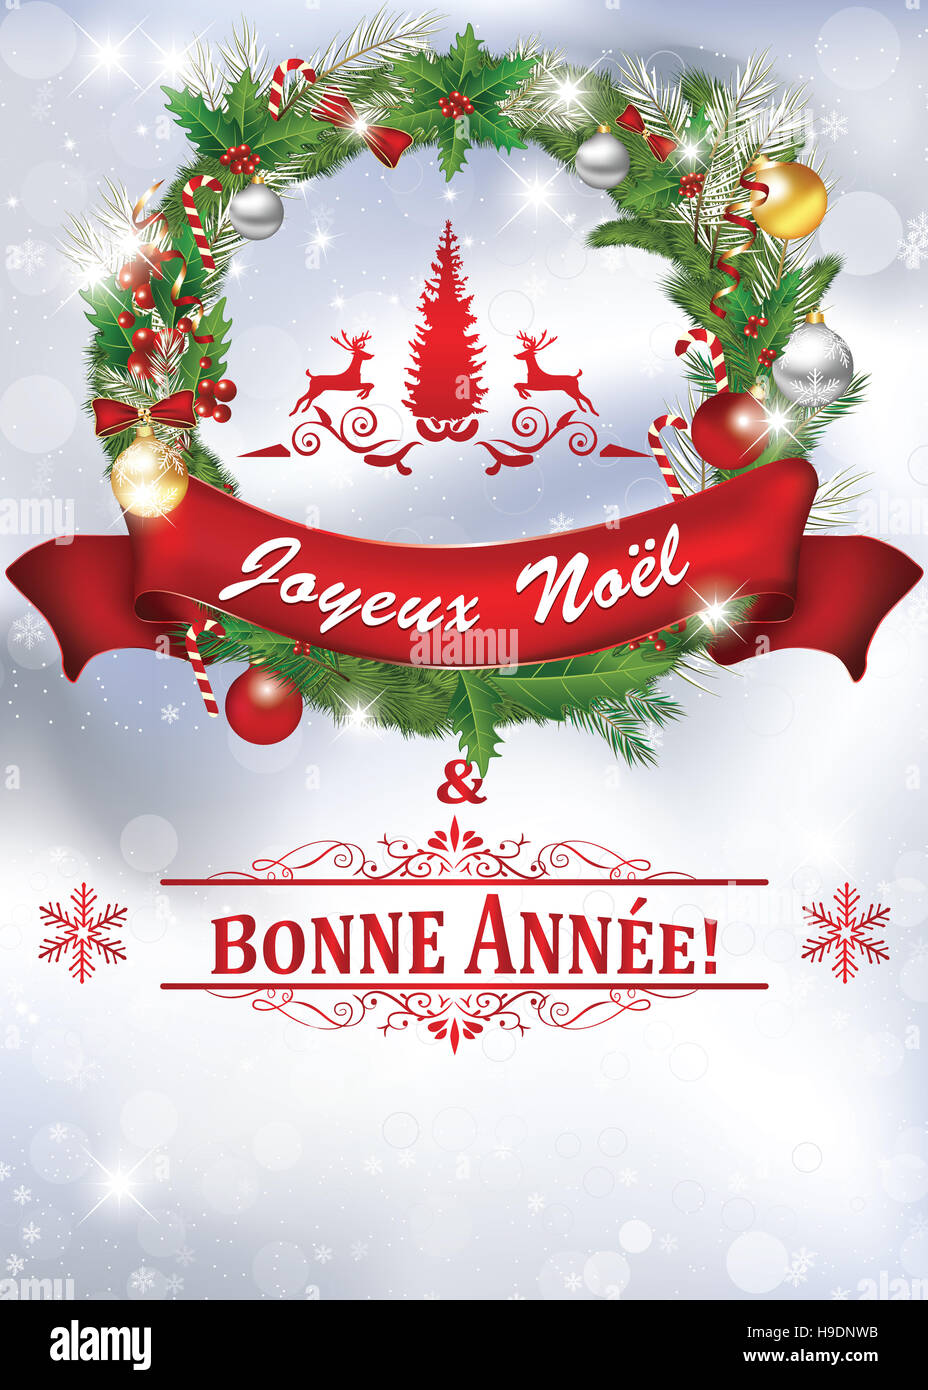 Joyeux Noel High Resolution Stock Photography and Images   Alamy